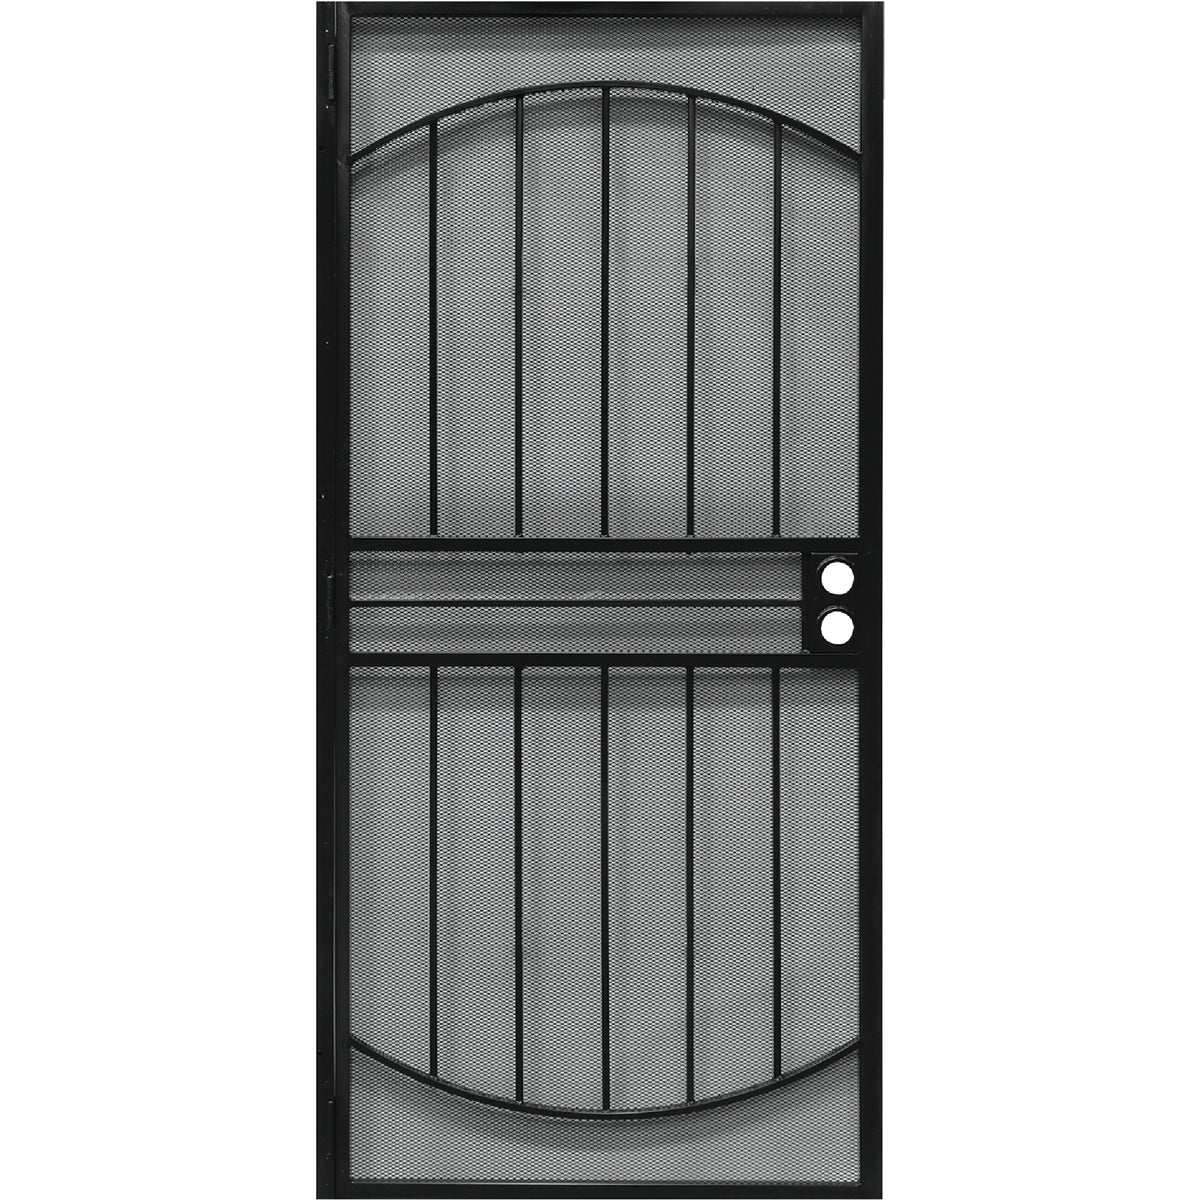 Item 160400, Steel security door powder coated with matching expanded steel mesh for added security.